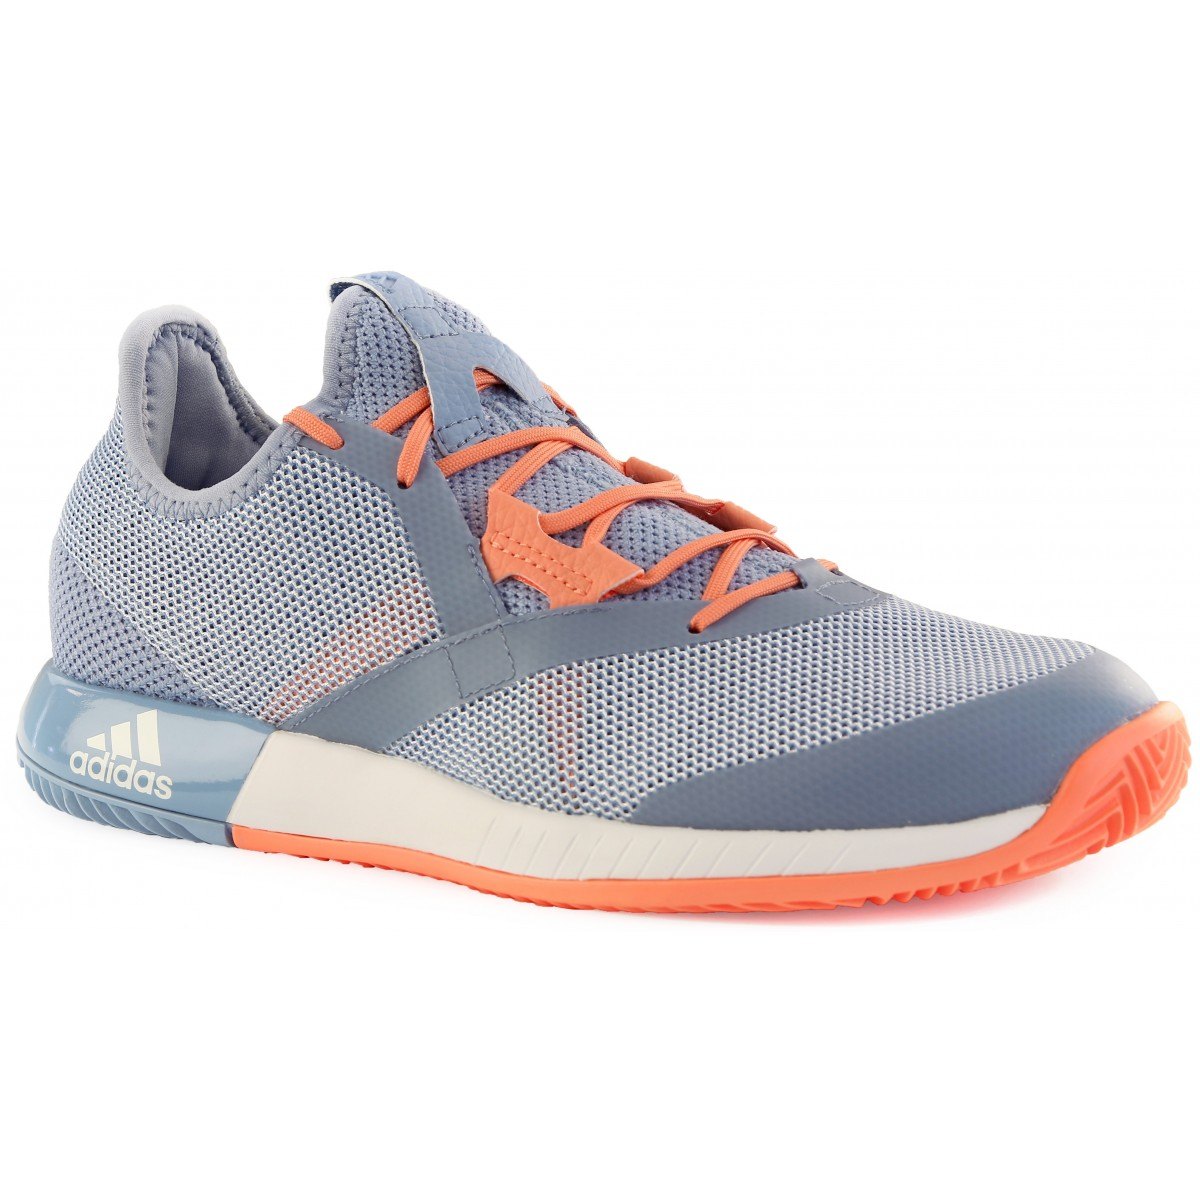 ea69e7c2a60c3 WOMEN S ADIDAS ADIZERO DEFIANT BOUNCE CLAY SHOES +